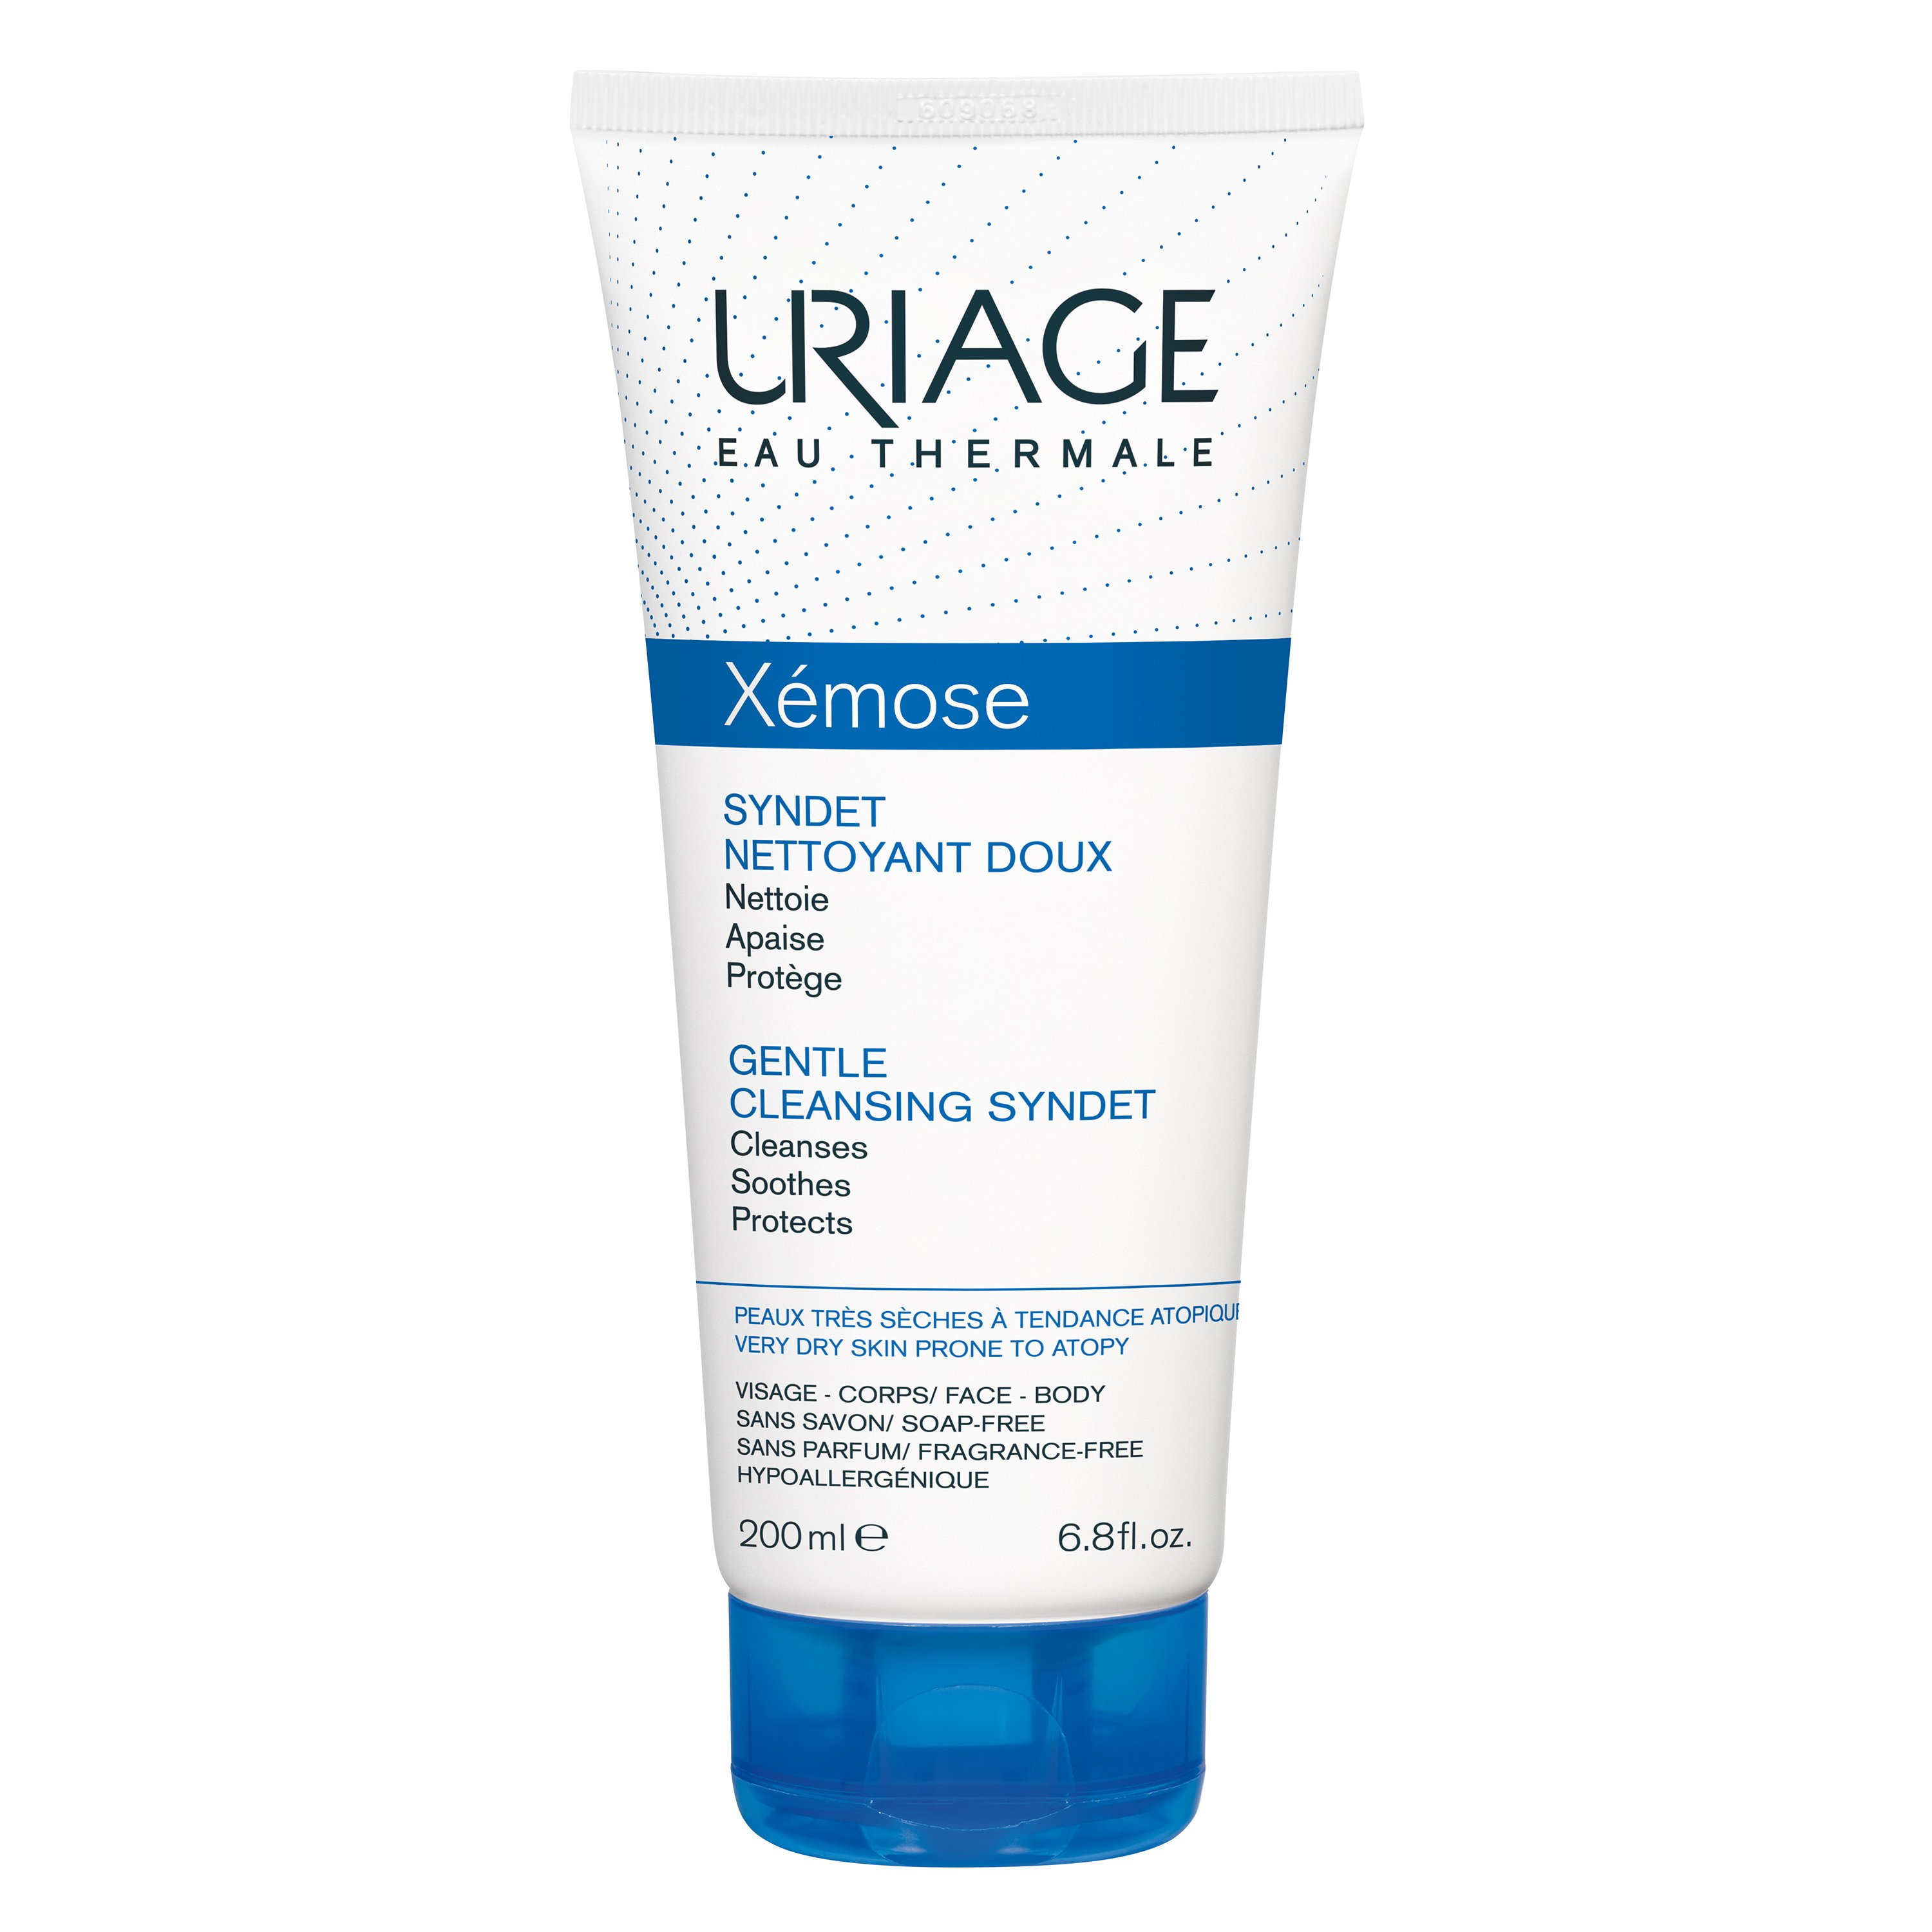 Uriage Eau Thermale Xemose Gentle Cleansing Syndet Εξαιρετικά Ήπια Τζελ Κρέμα Καθαρισμού 200ml